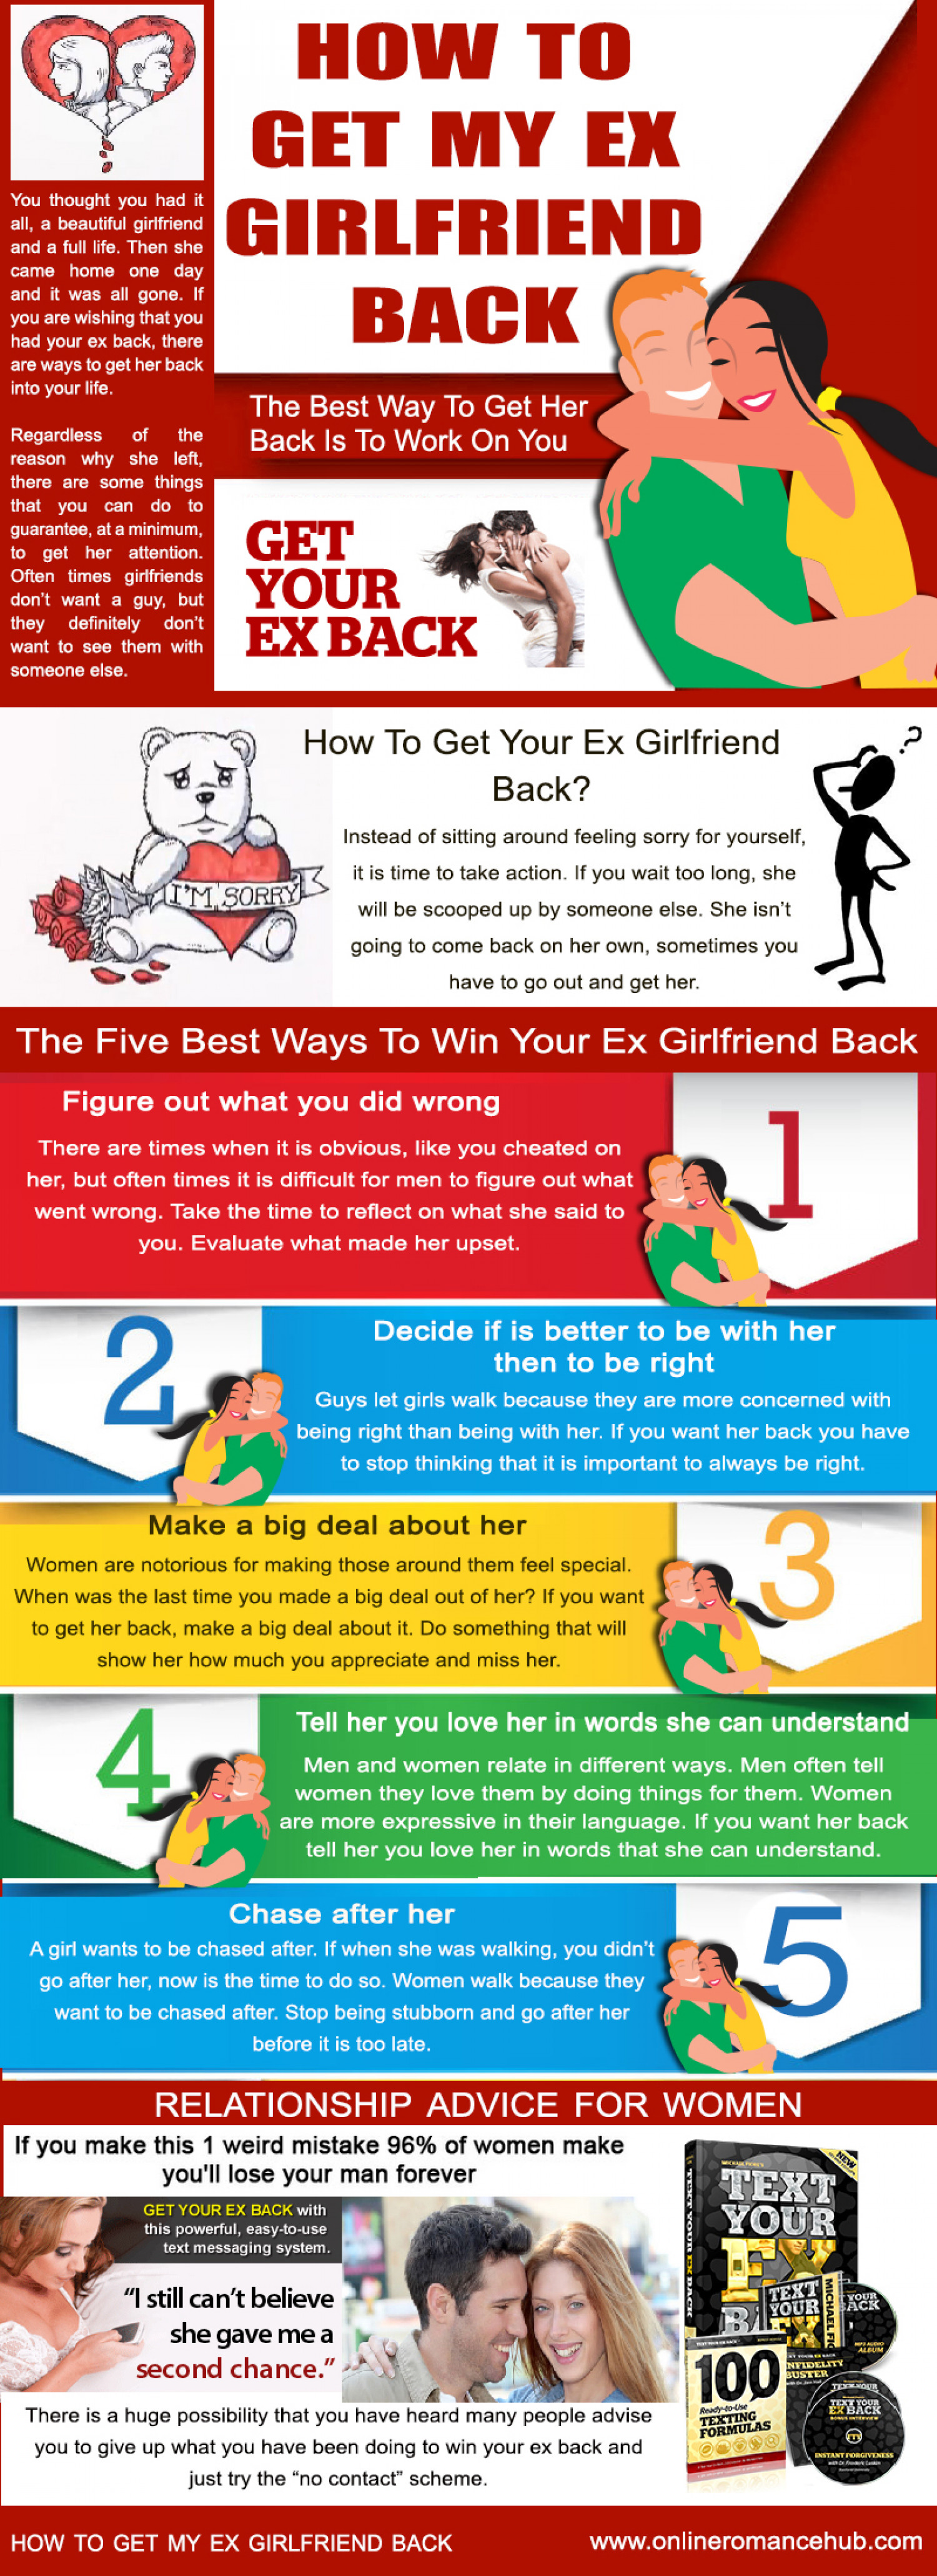 How To Get My Ex Girlfriend Back Infographic